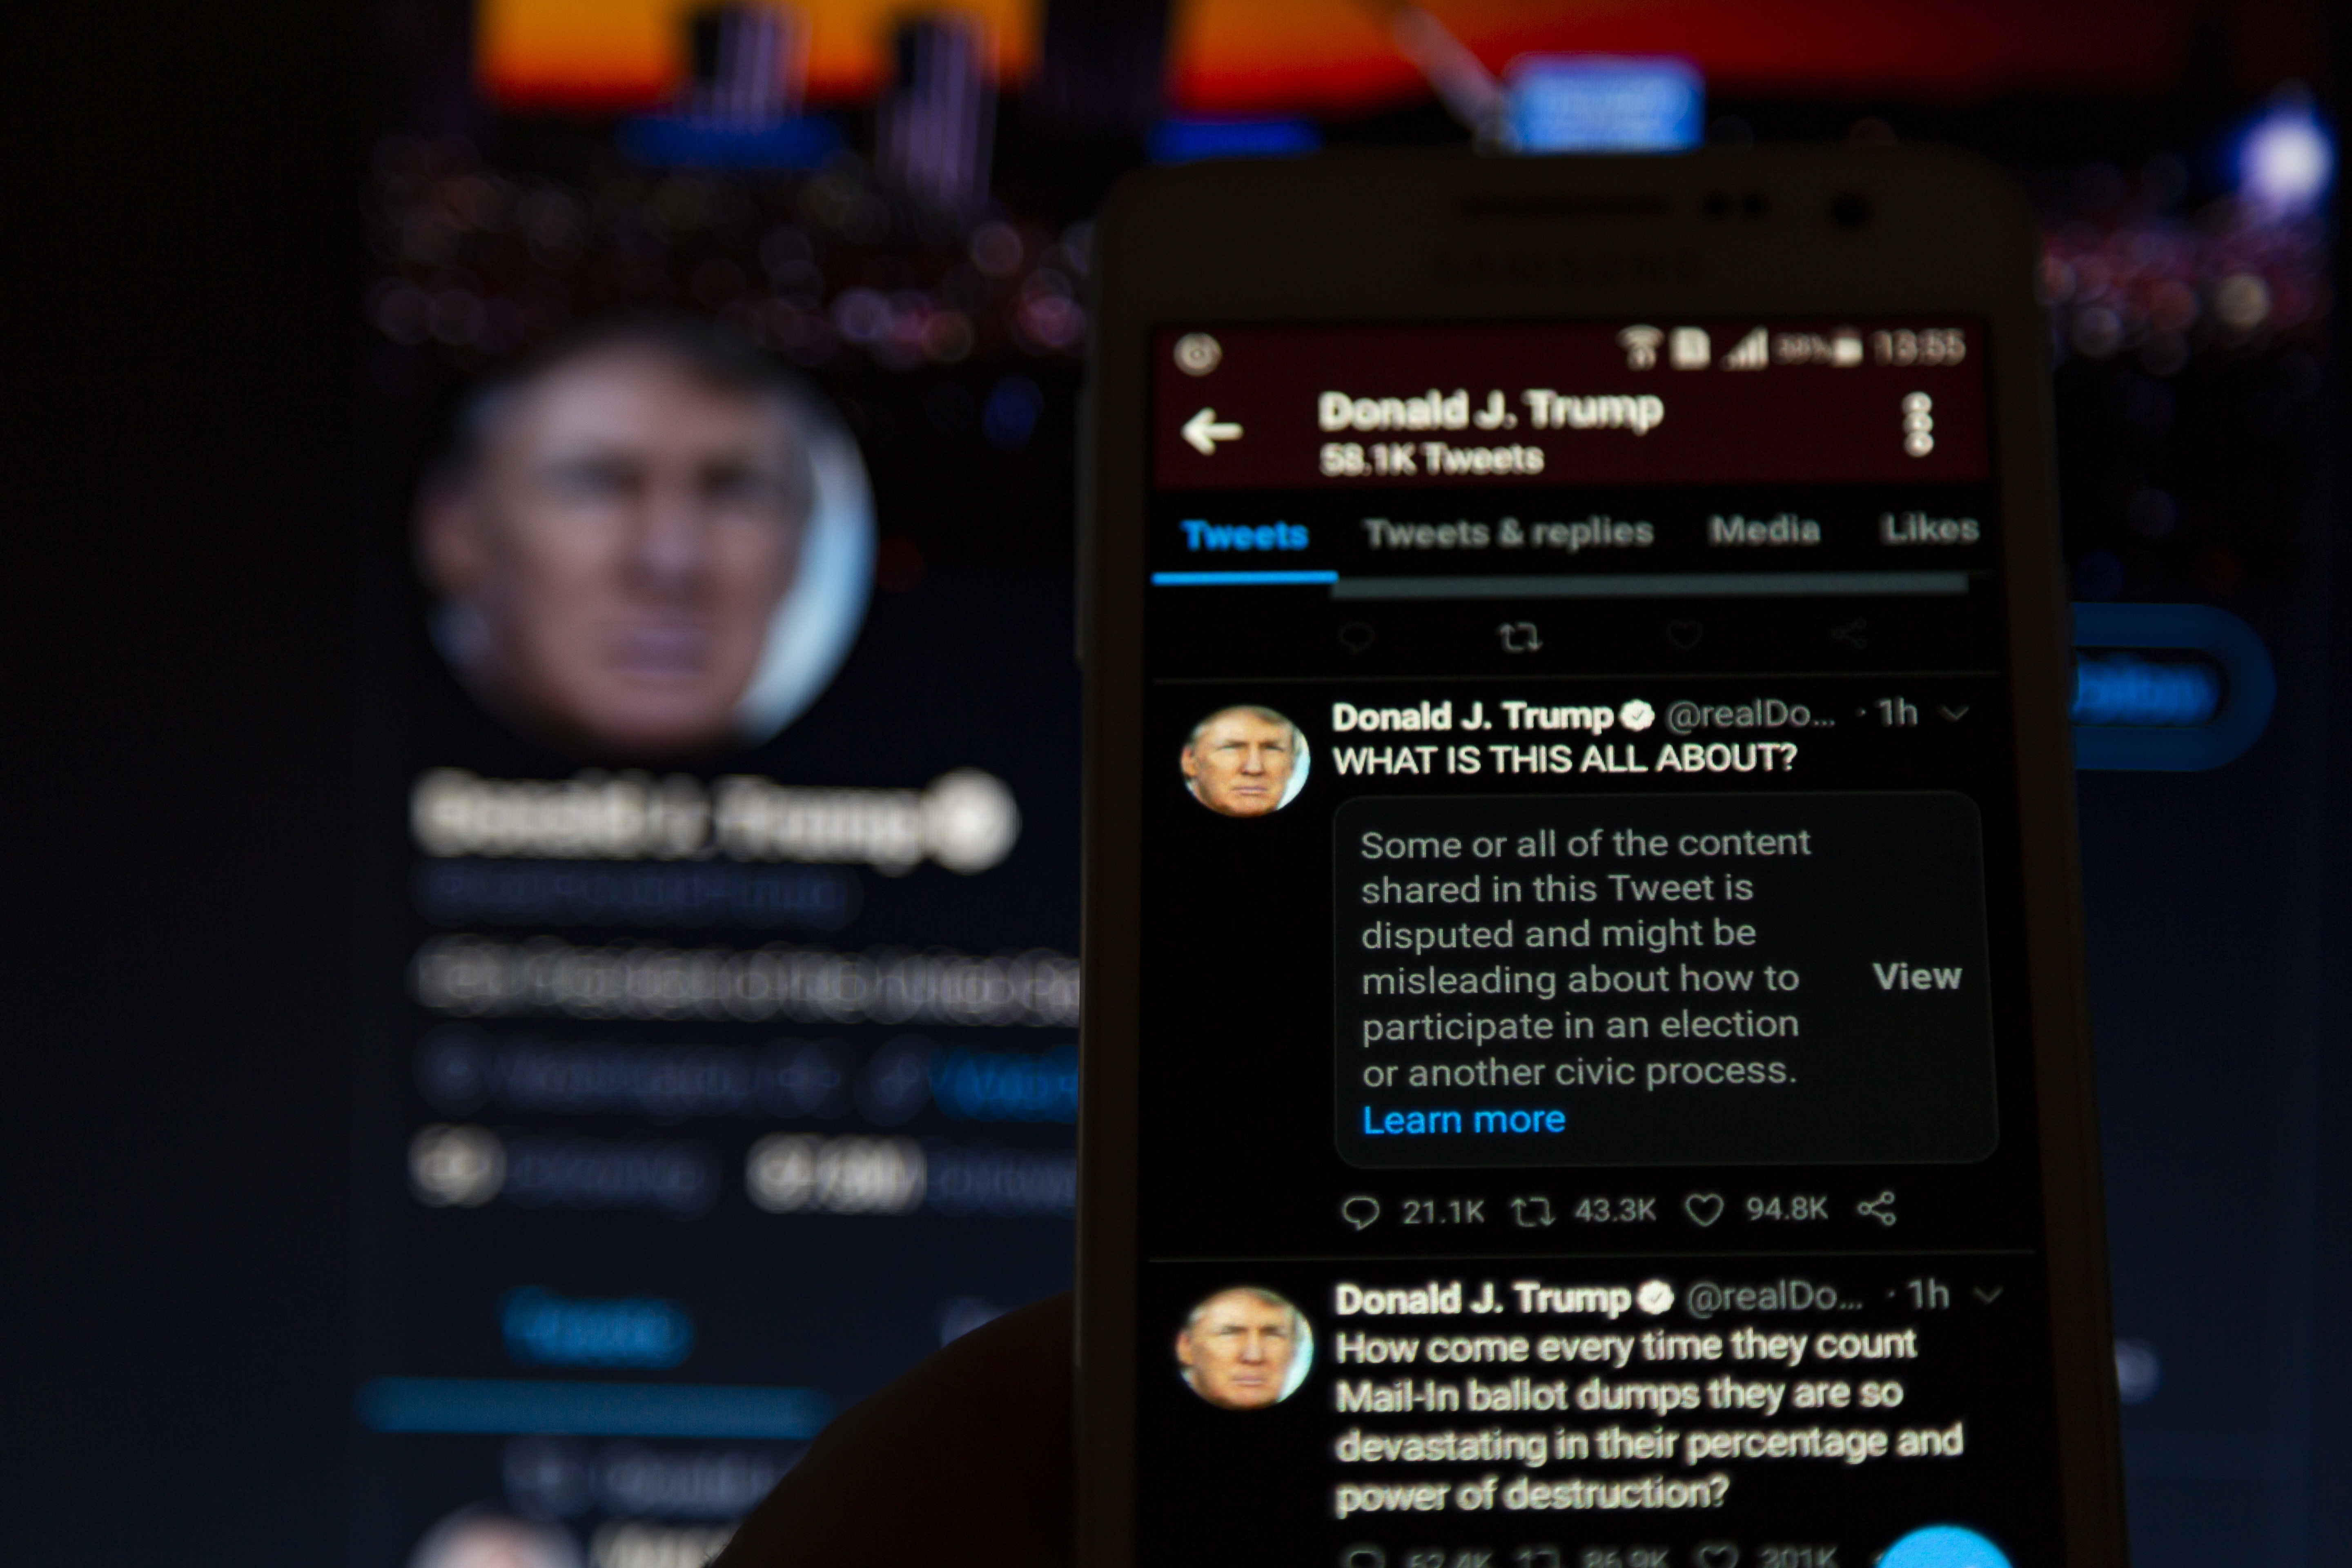 Twitter Adds a Label to Trump Post